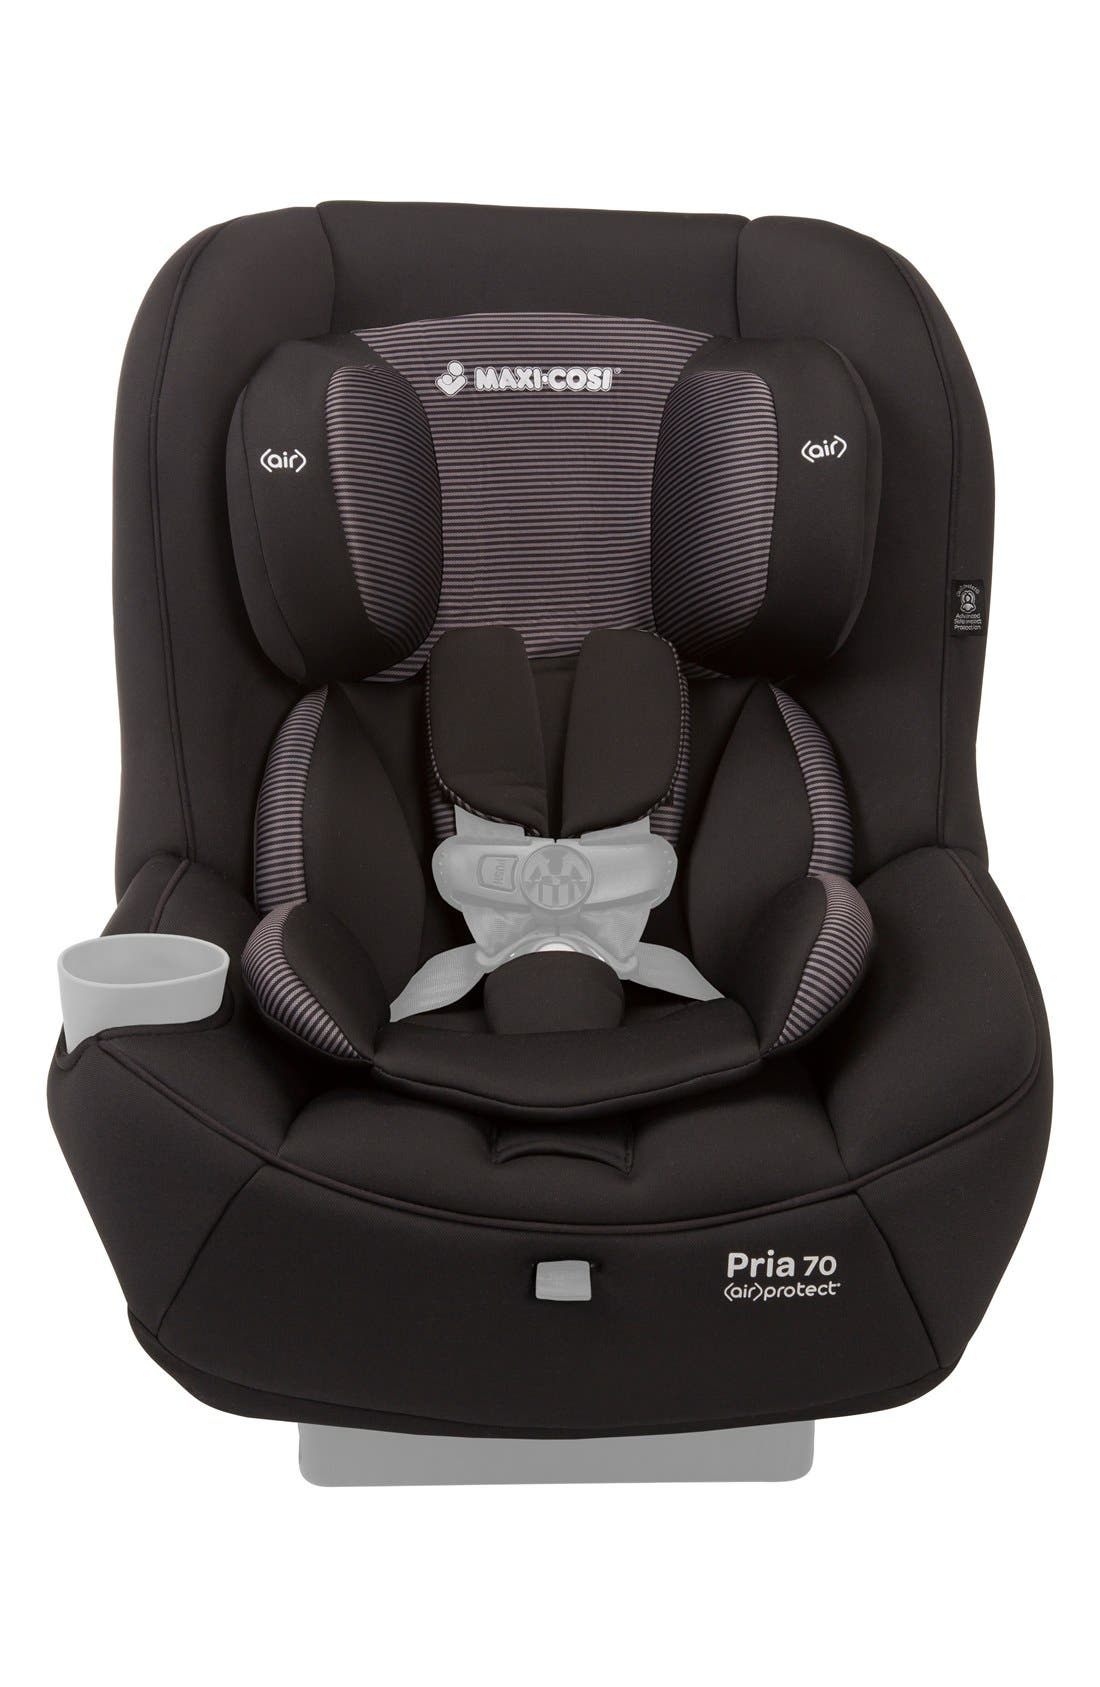 Infant MaxiCosi Seat Pad Fashion Kit For Pria(TM) 70 Car Seat Size One Size  Black